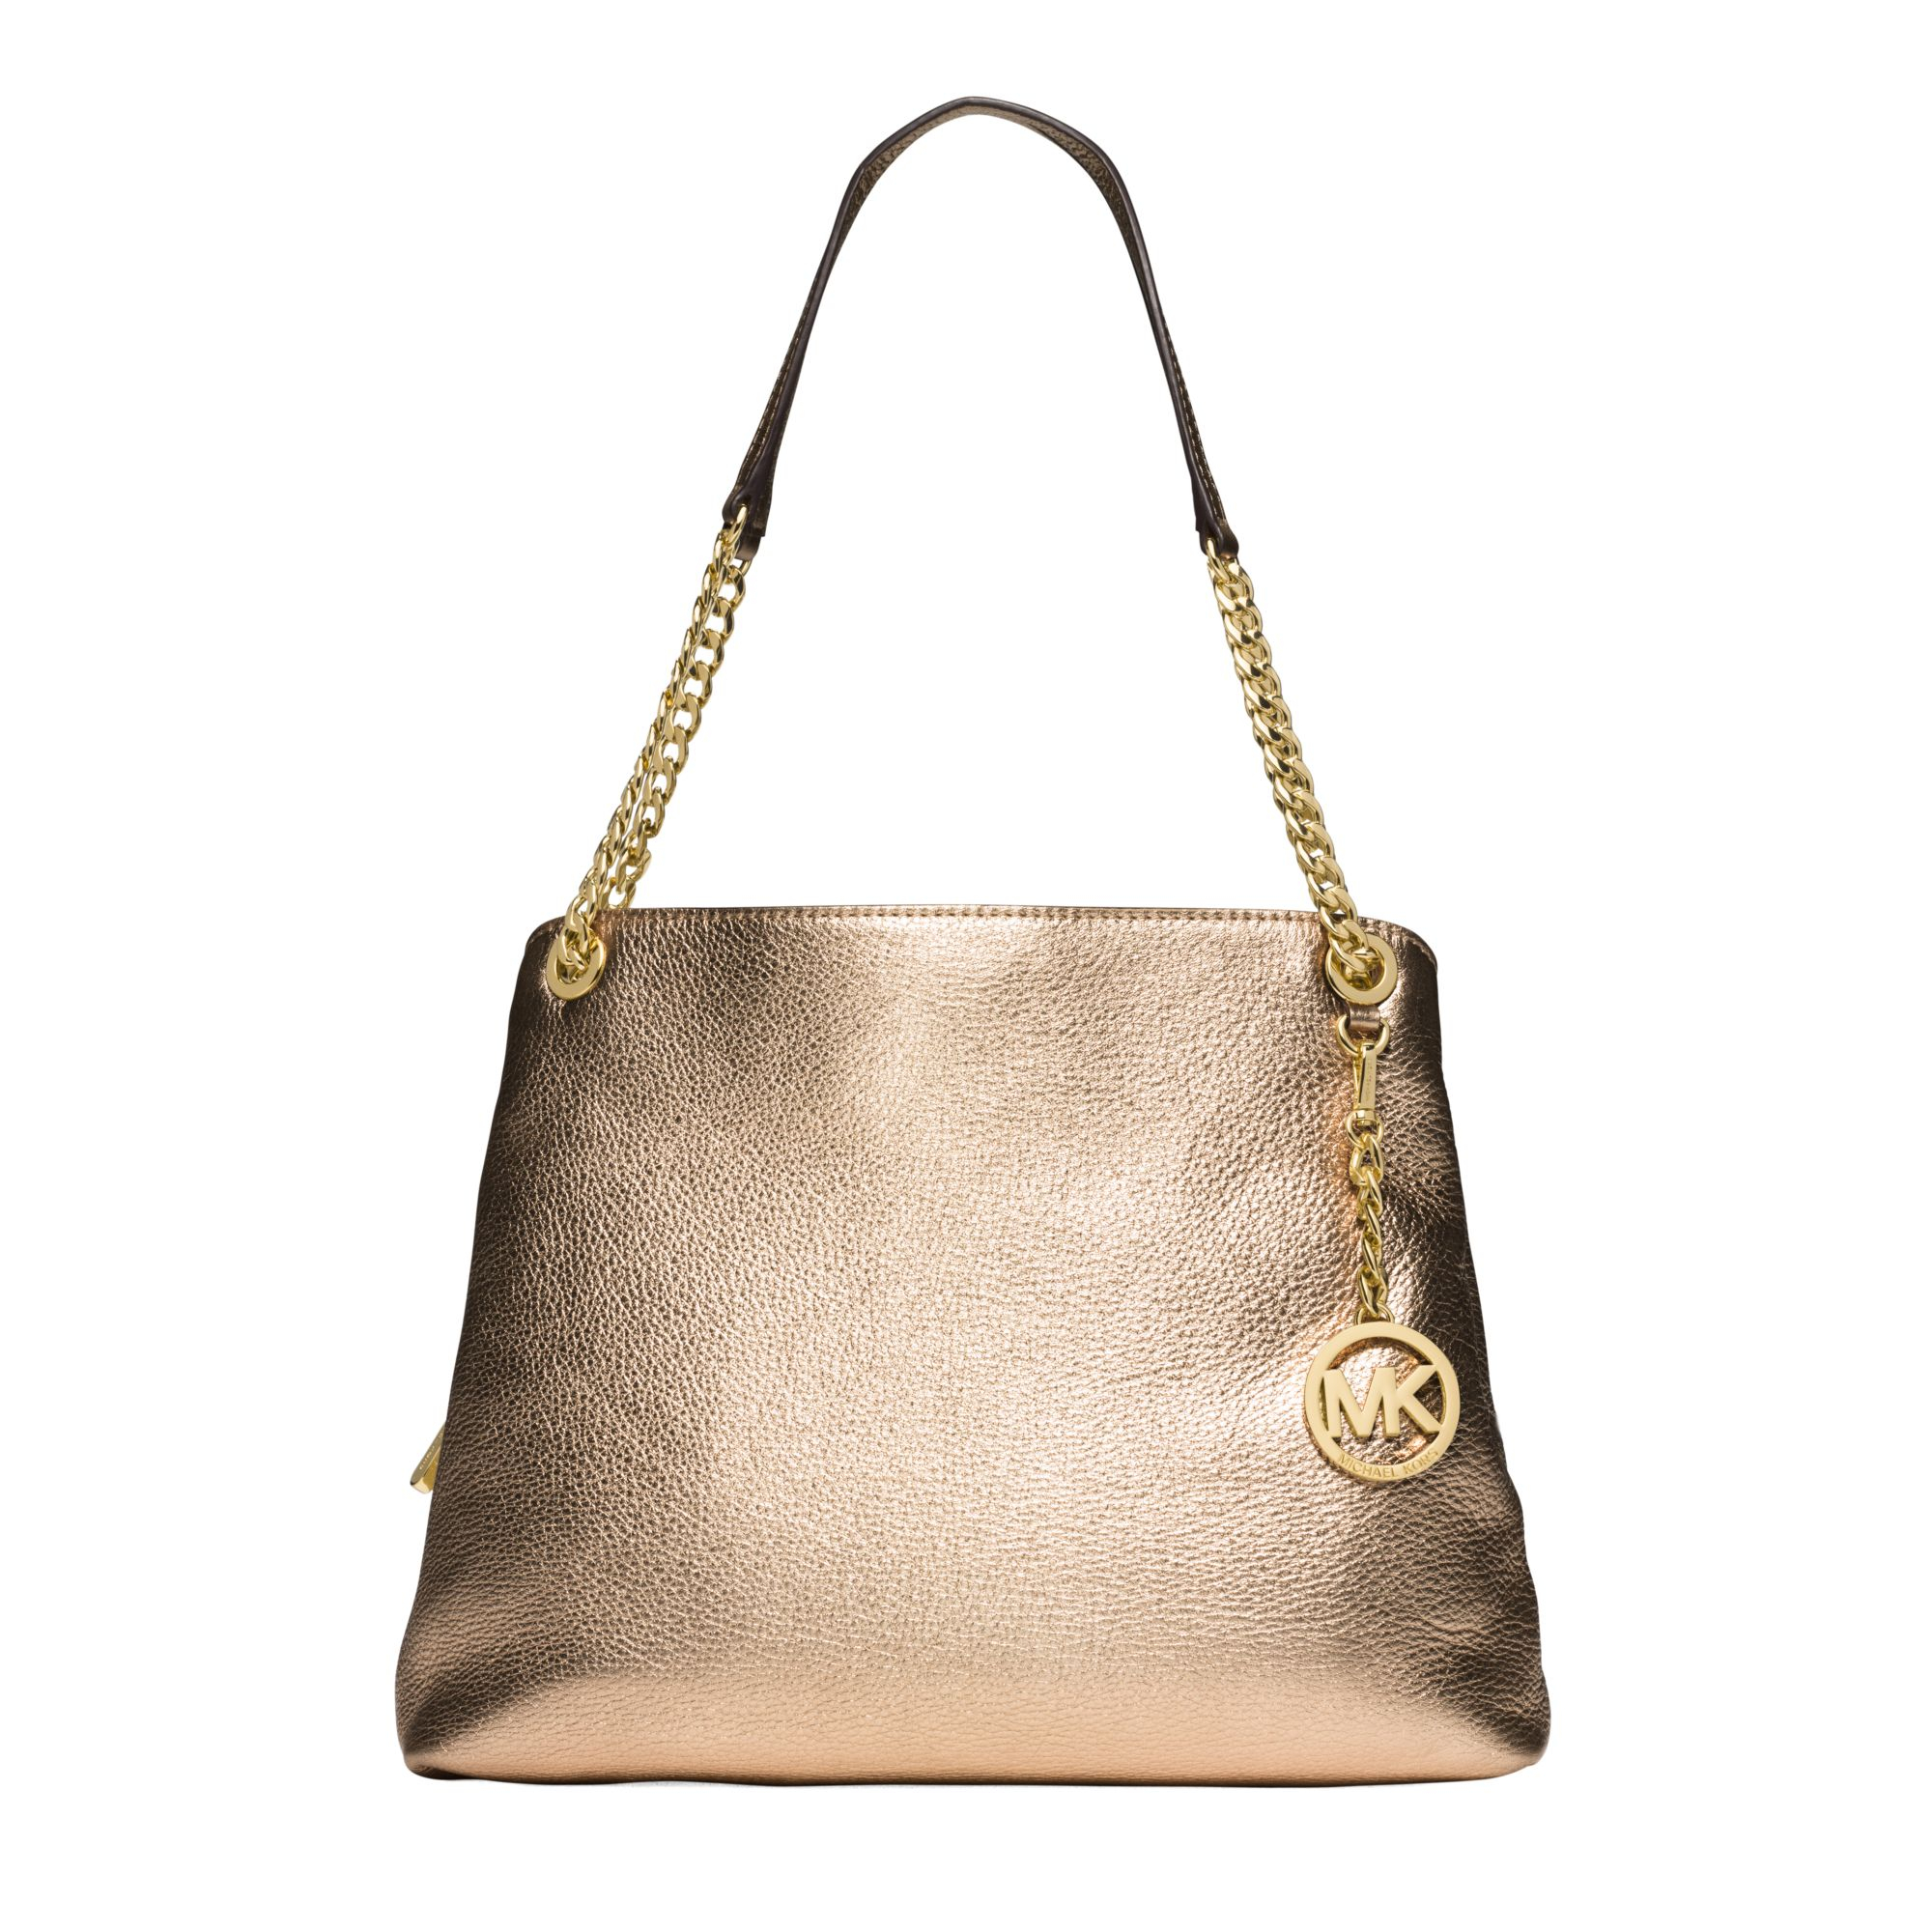 a67cf51b7447 ... discount code for lyst michael kors jet set large metallic leather shoulder  bag in 4f143 6f447